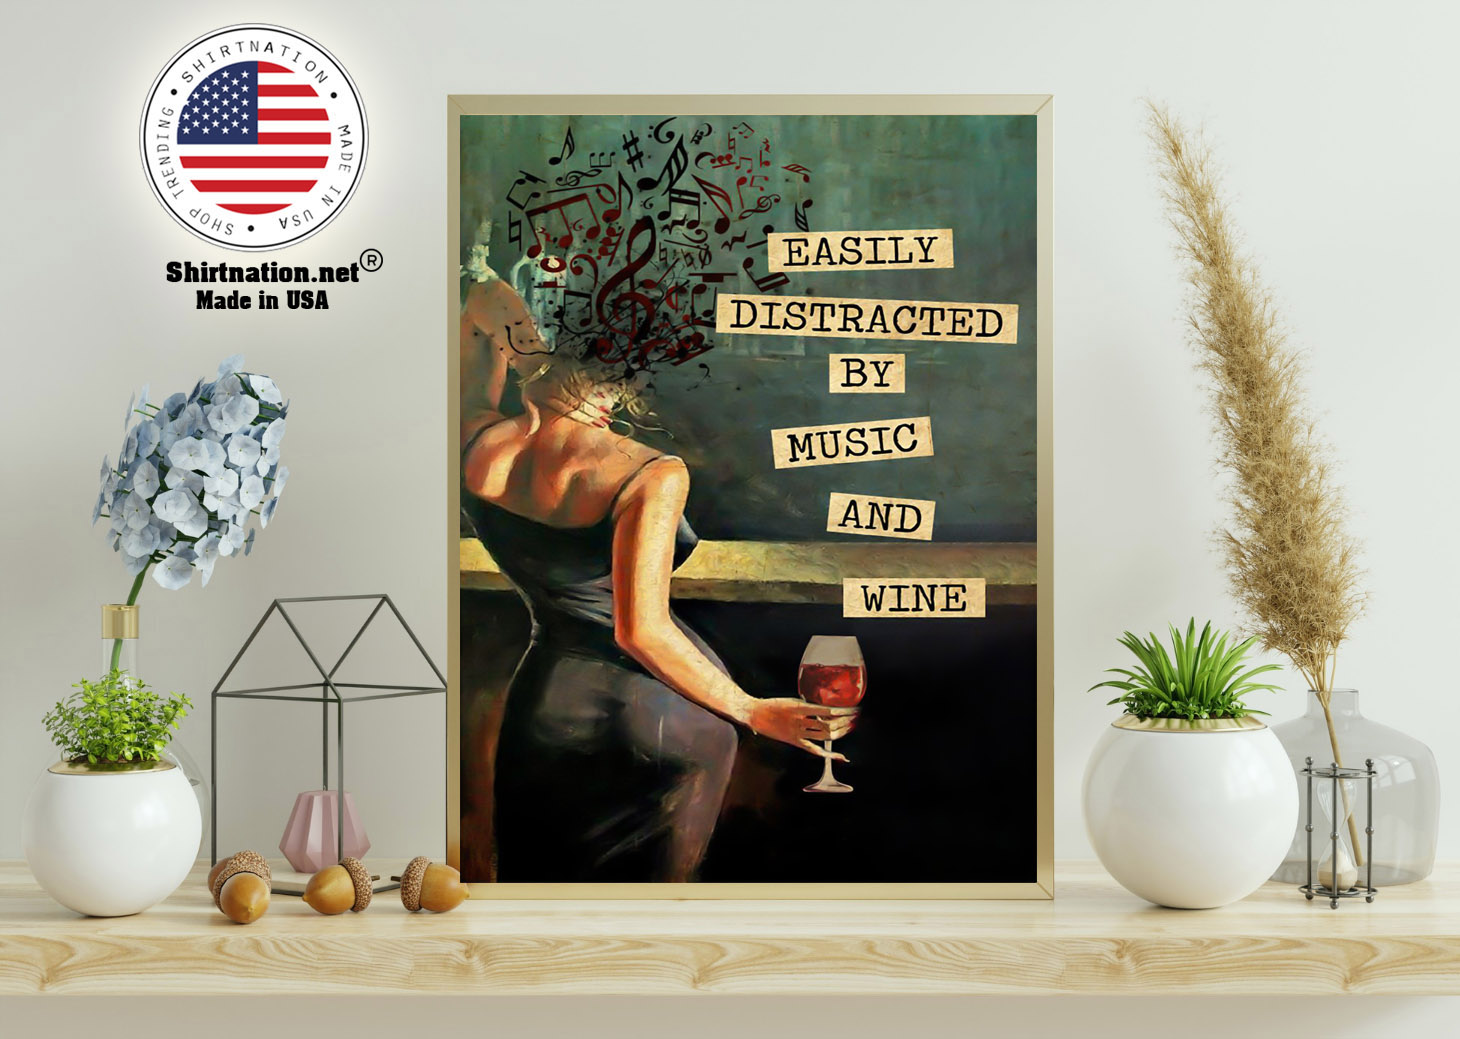 Vintage easily distracted by music and wine poster 15 2